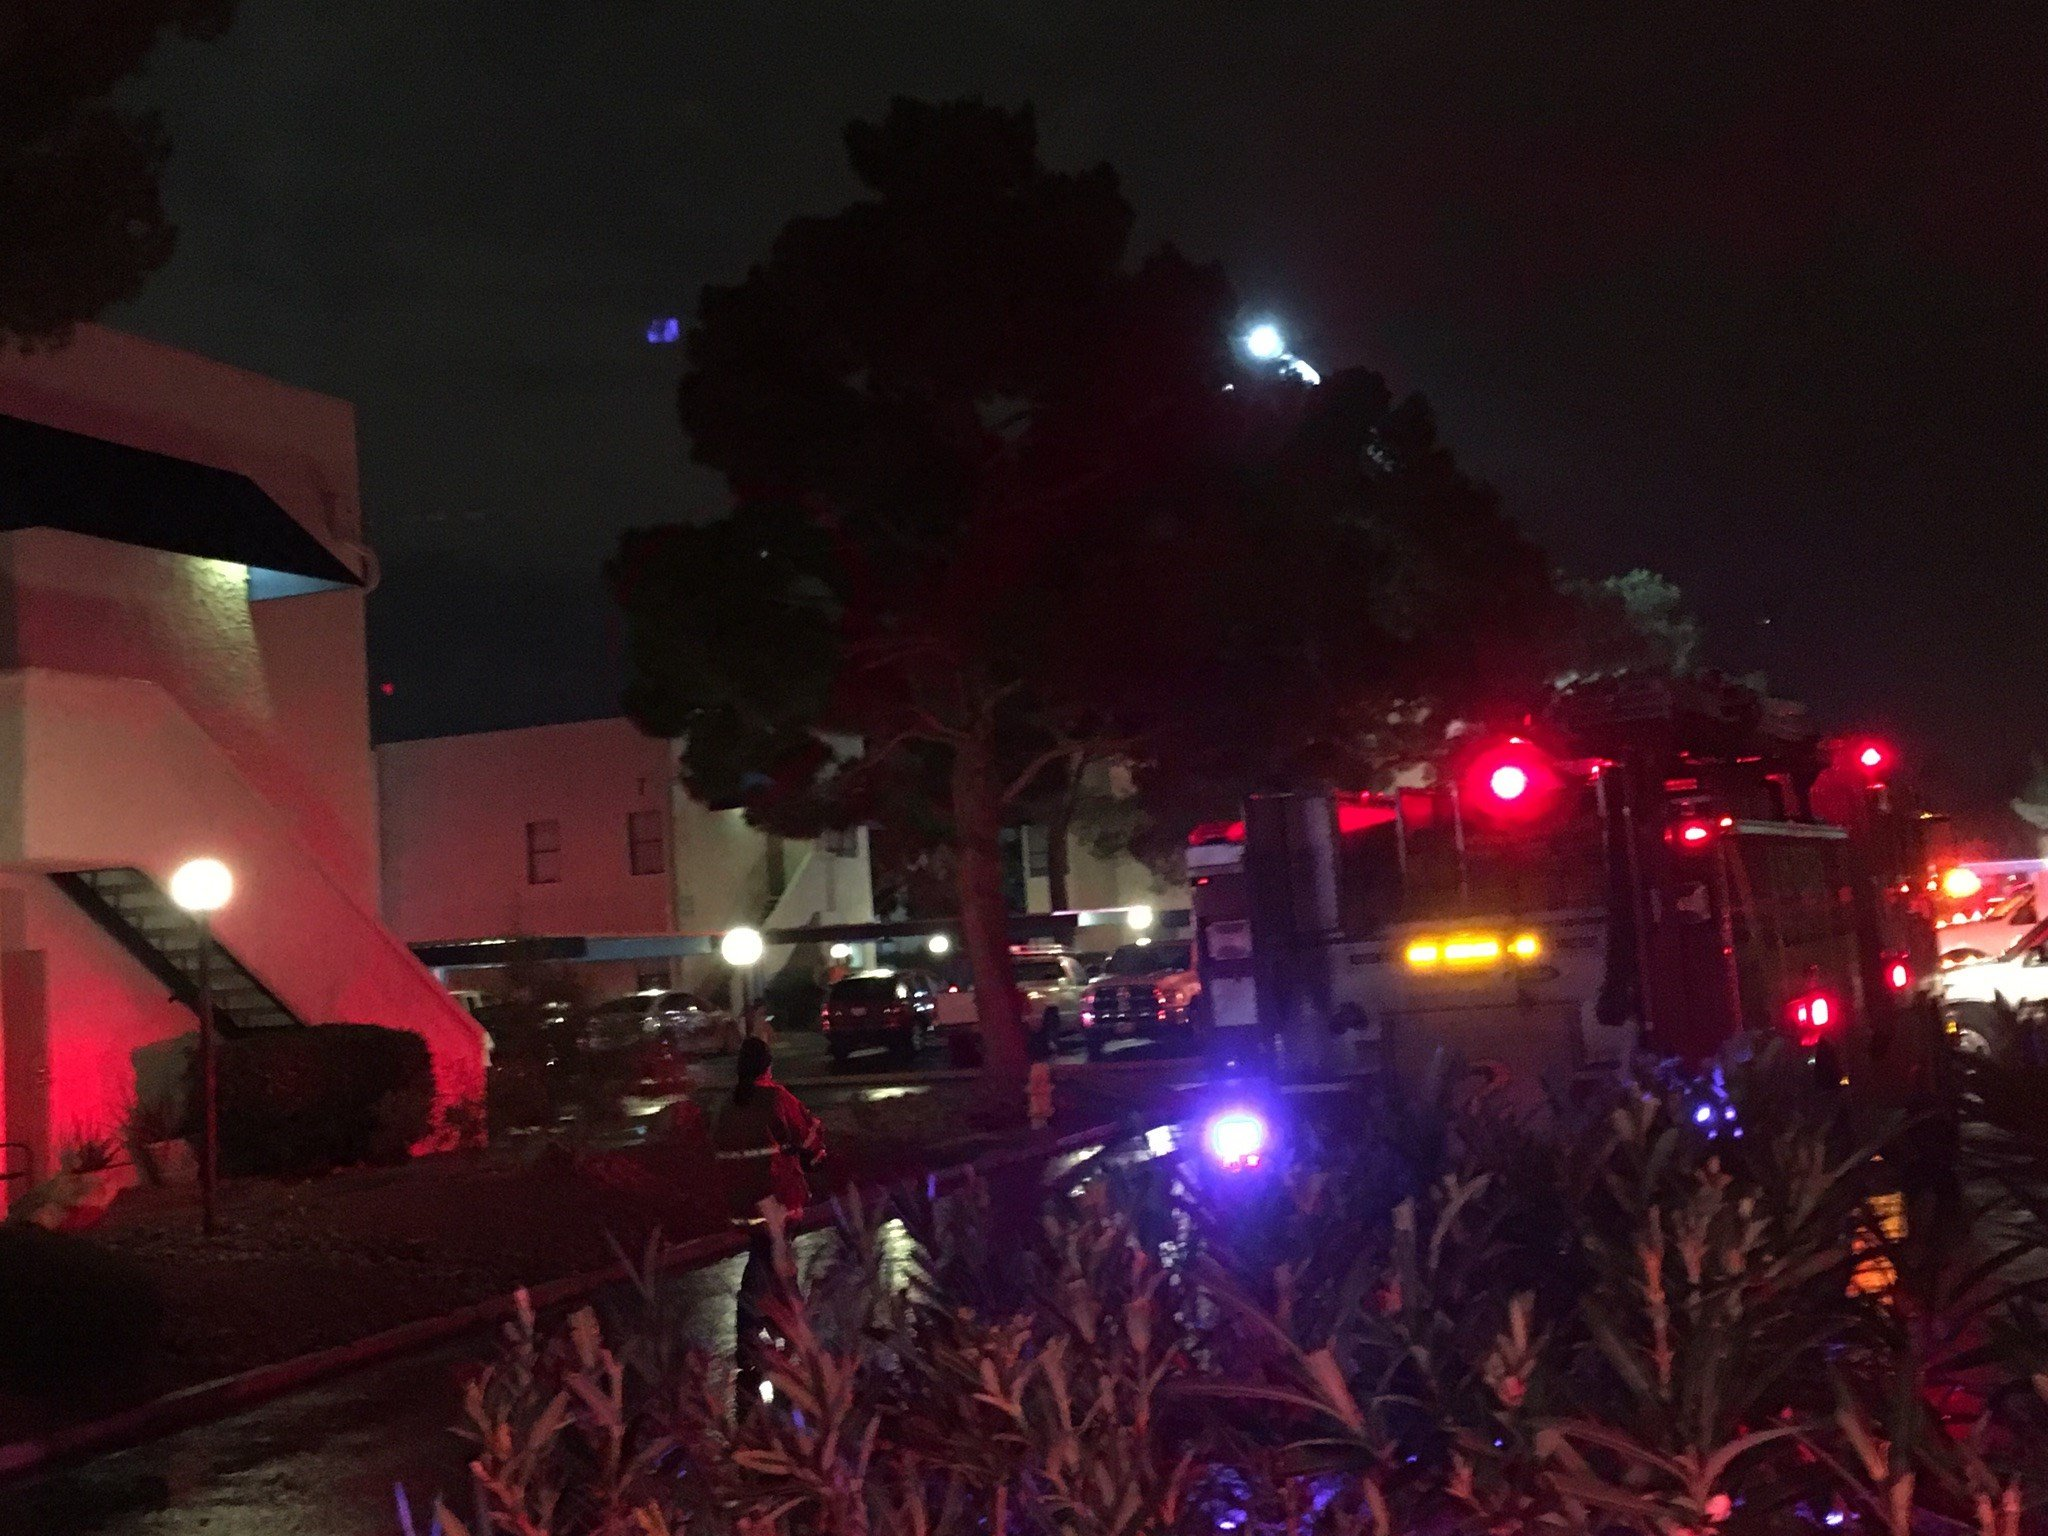 The Clark County Fire Department on the scene of a fire on Red Rock Street in Las Vegas on Oct. 23, 2016. (Source: FOX5 Vegas)